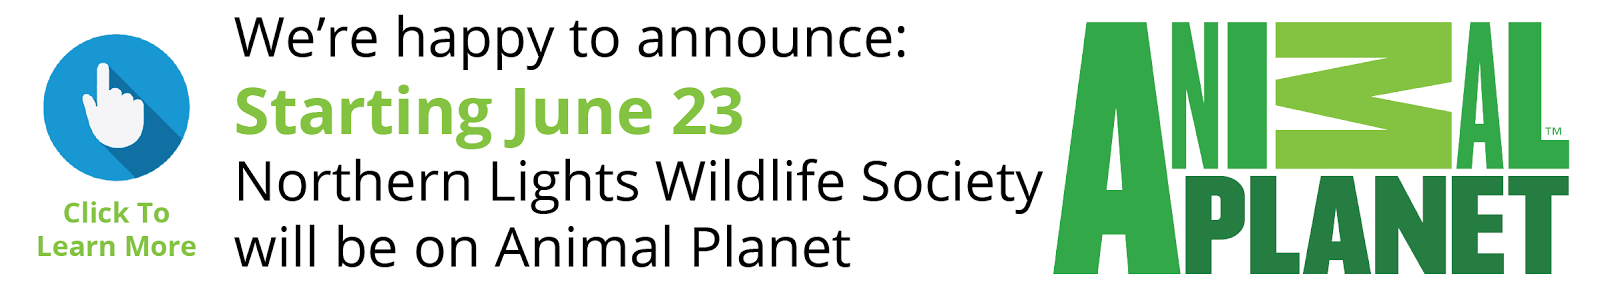 We'll Be On Animal Planet June 23